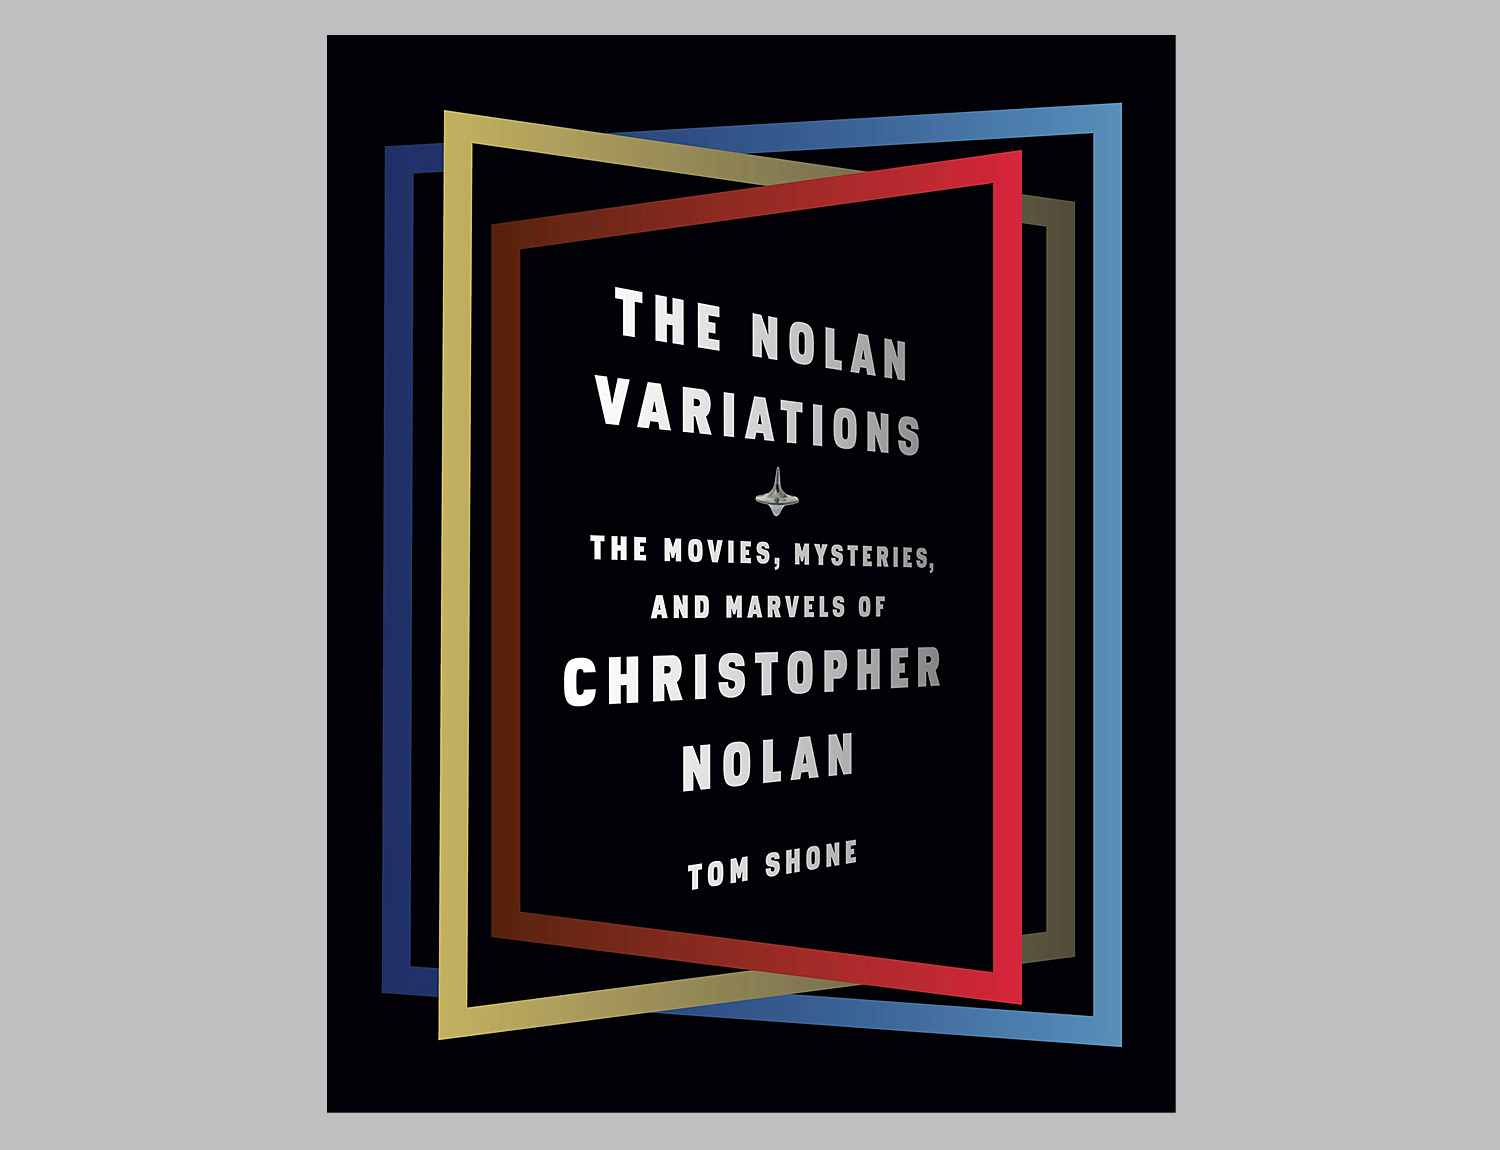 The Nolan Variations: The Movies, Mysteries, and Marvels of Christopher Nolan at werd.com